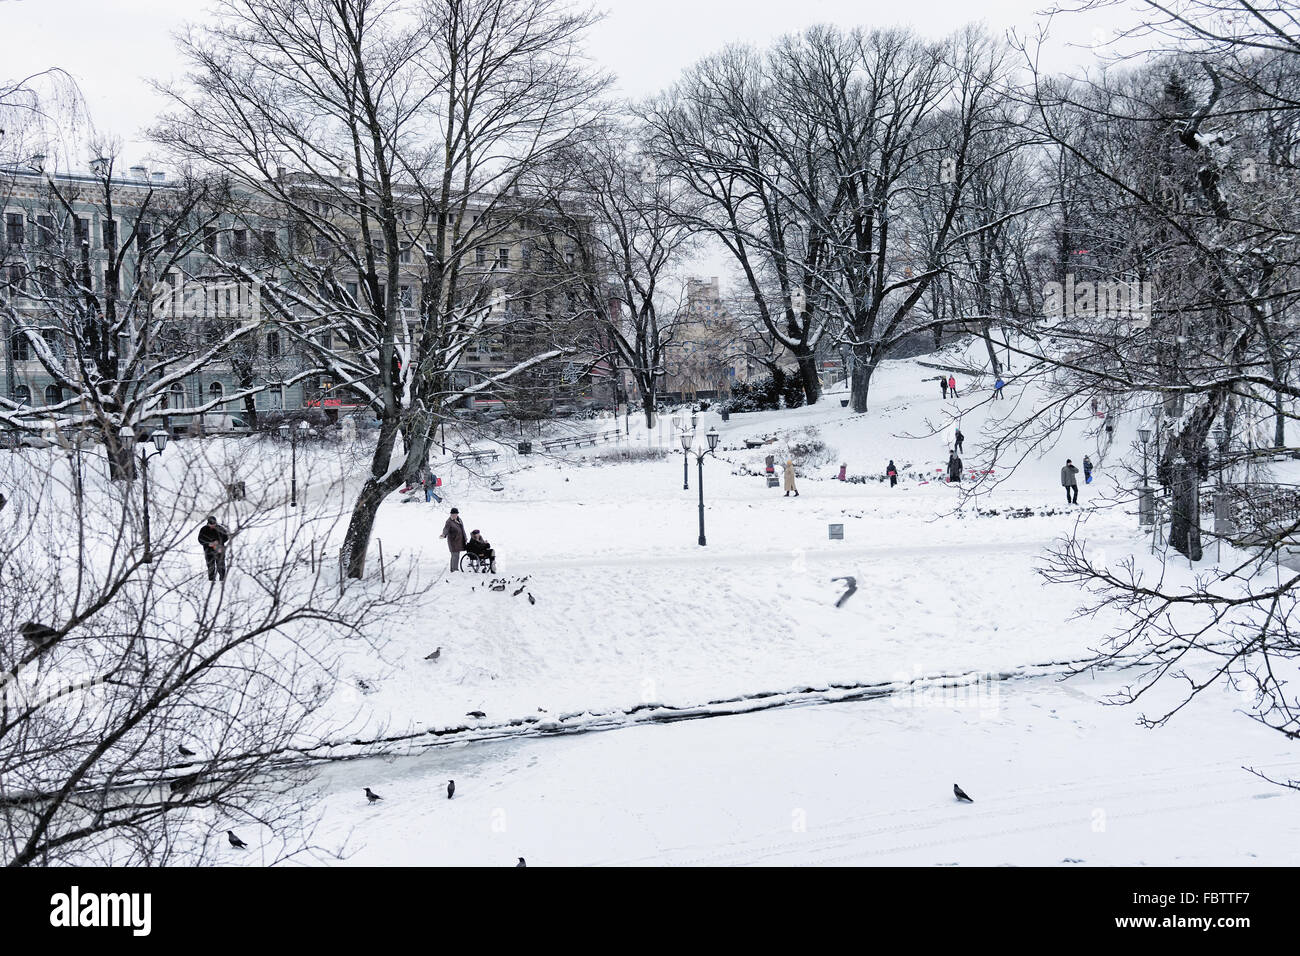 People walk and feed the birds in the city park Riga snowy winter background of houses and trees. Latvia - Stock Image